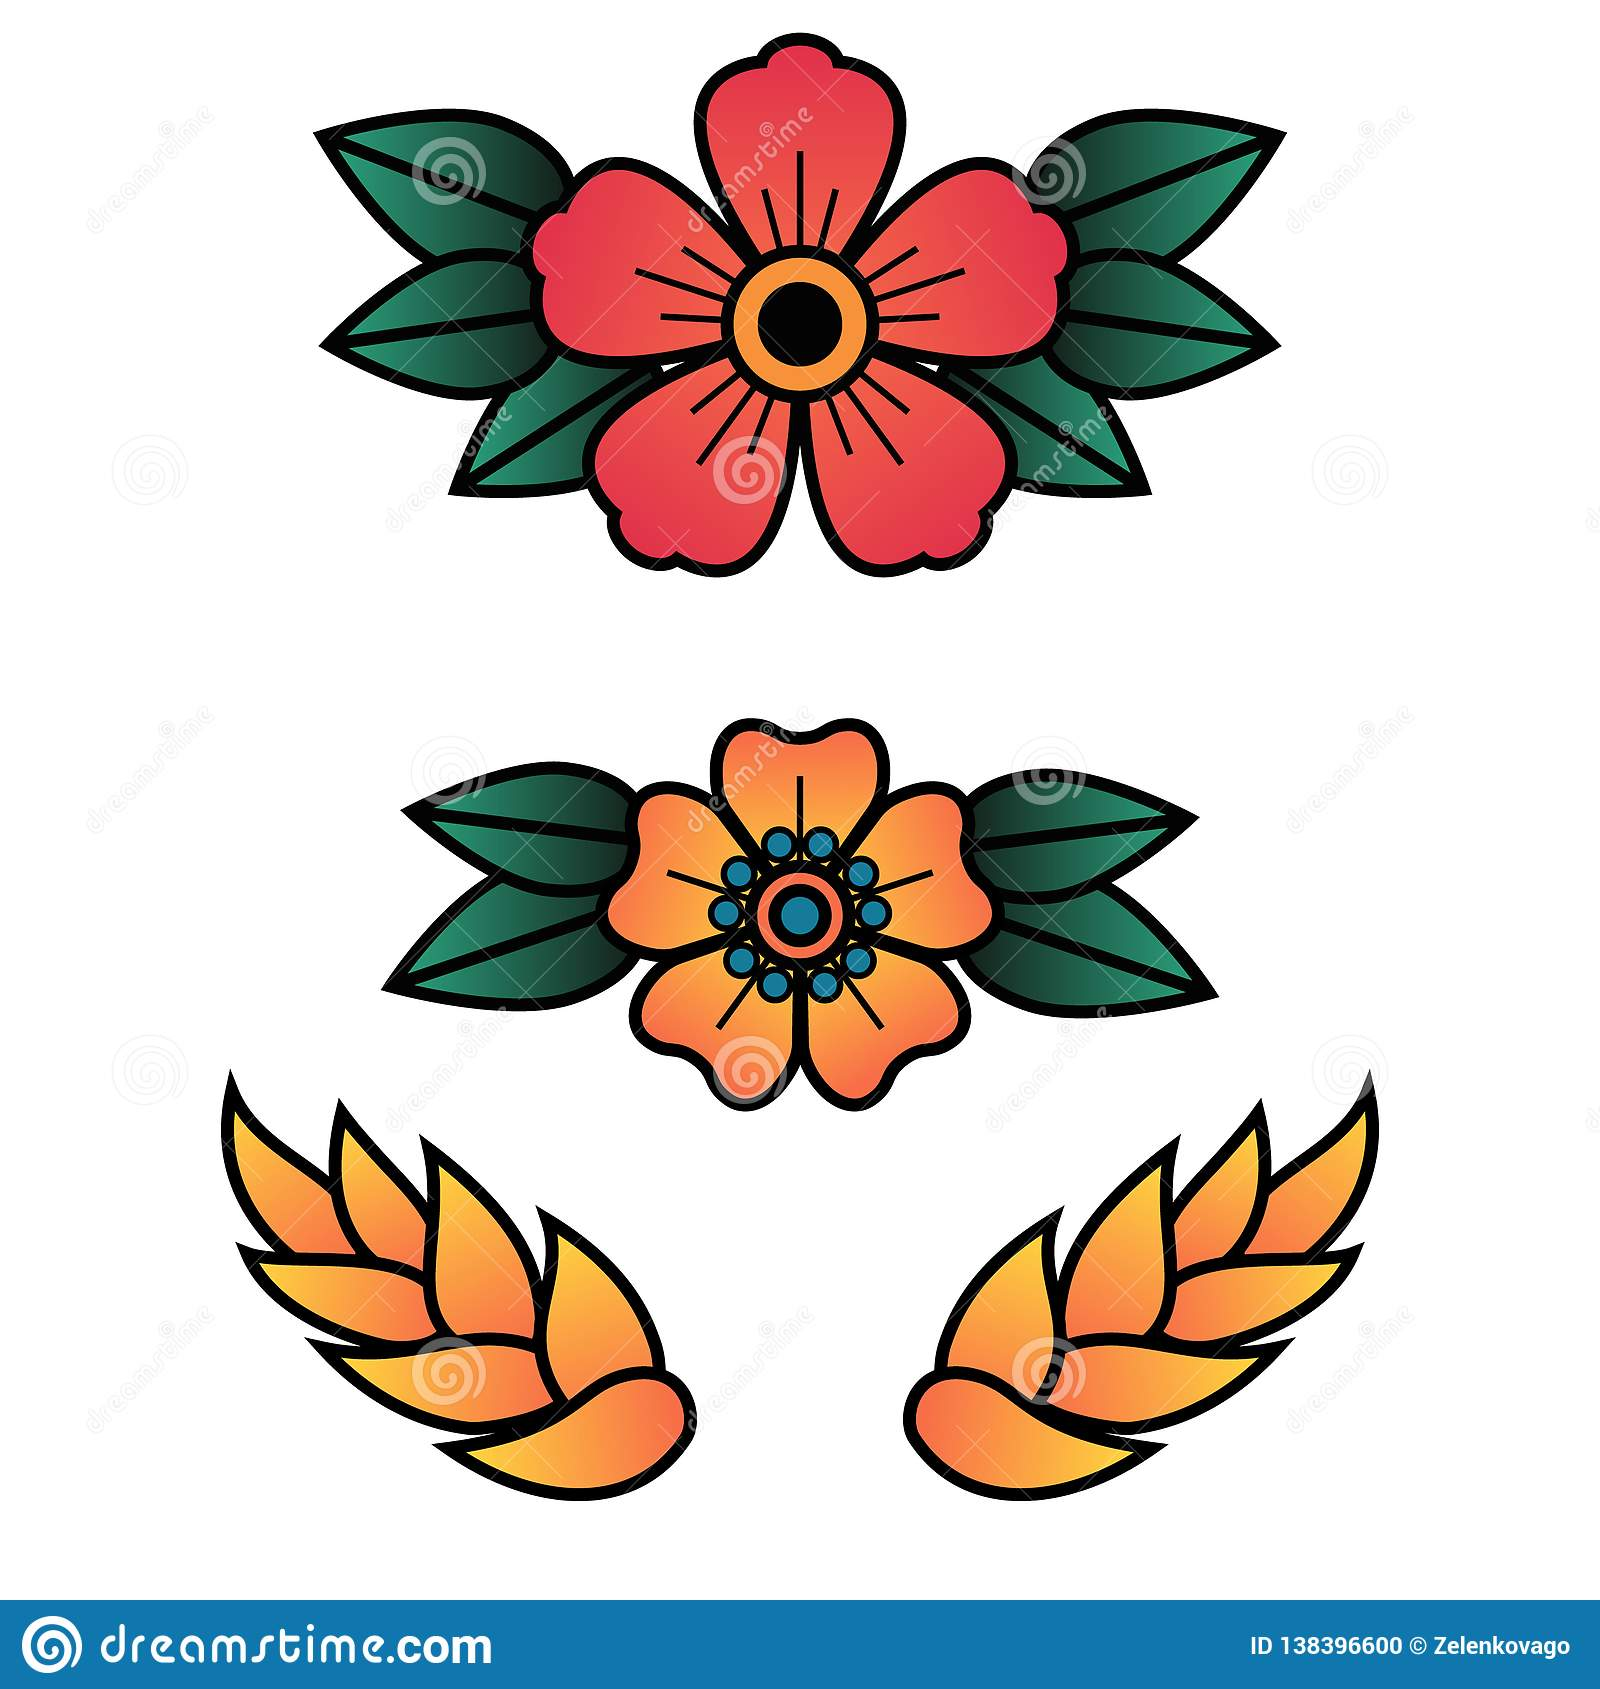 6ec41ecd0 Oldschool Traditional Tattoo Vector Flowers With 5 Petals Stock ...